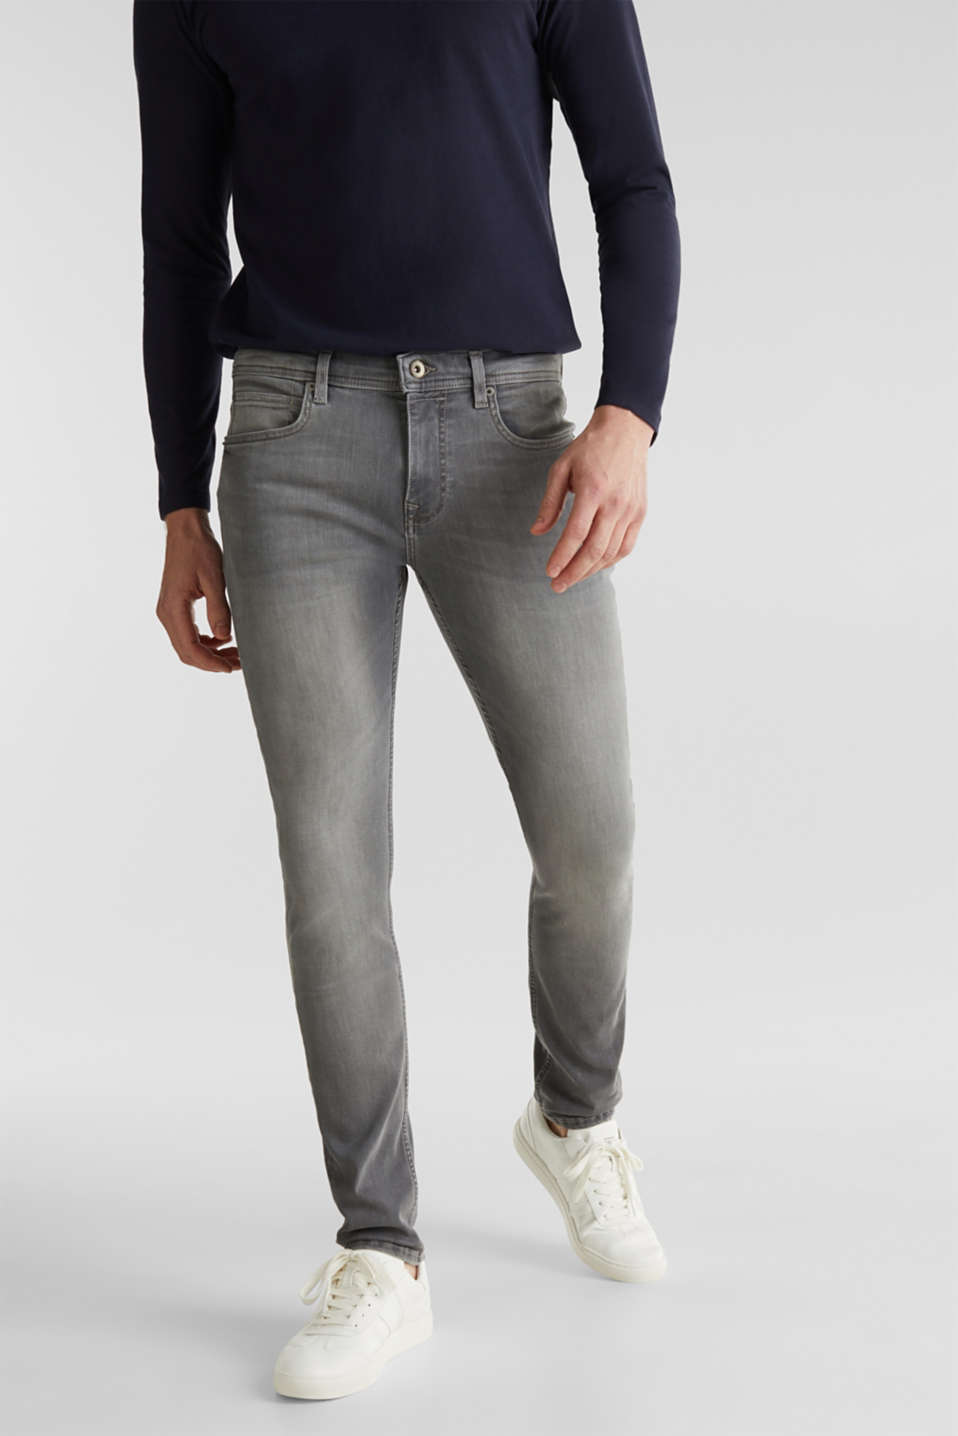 Esprit - Super stretchy jeans with washed-out effect